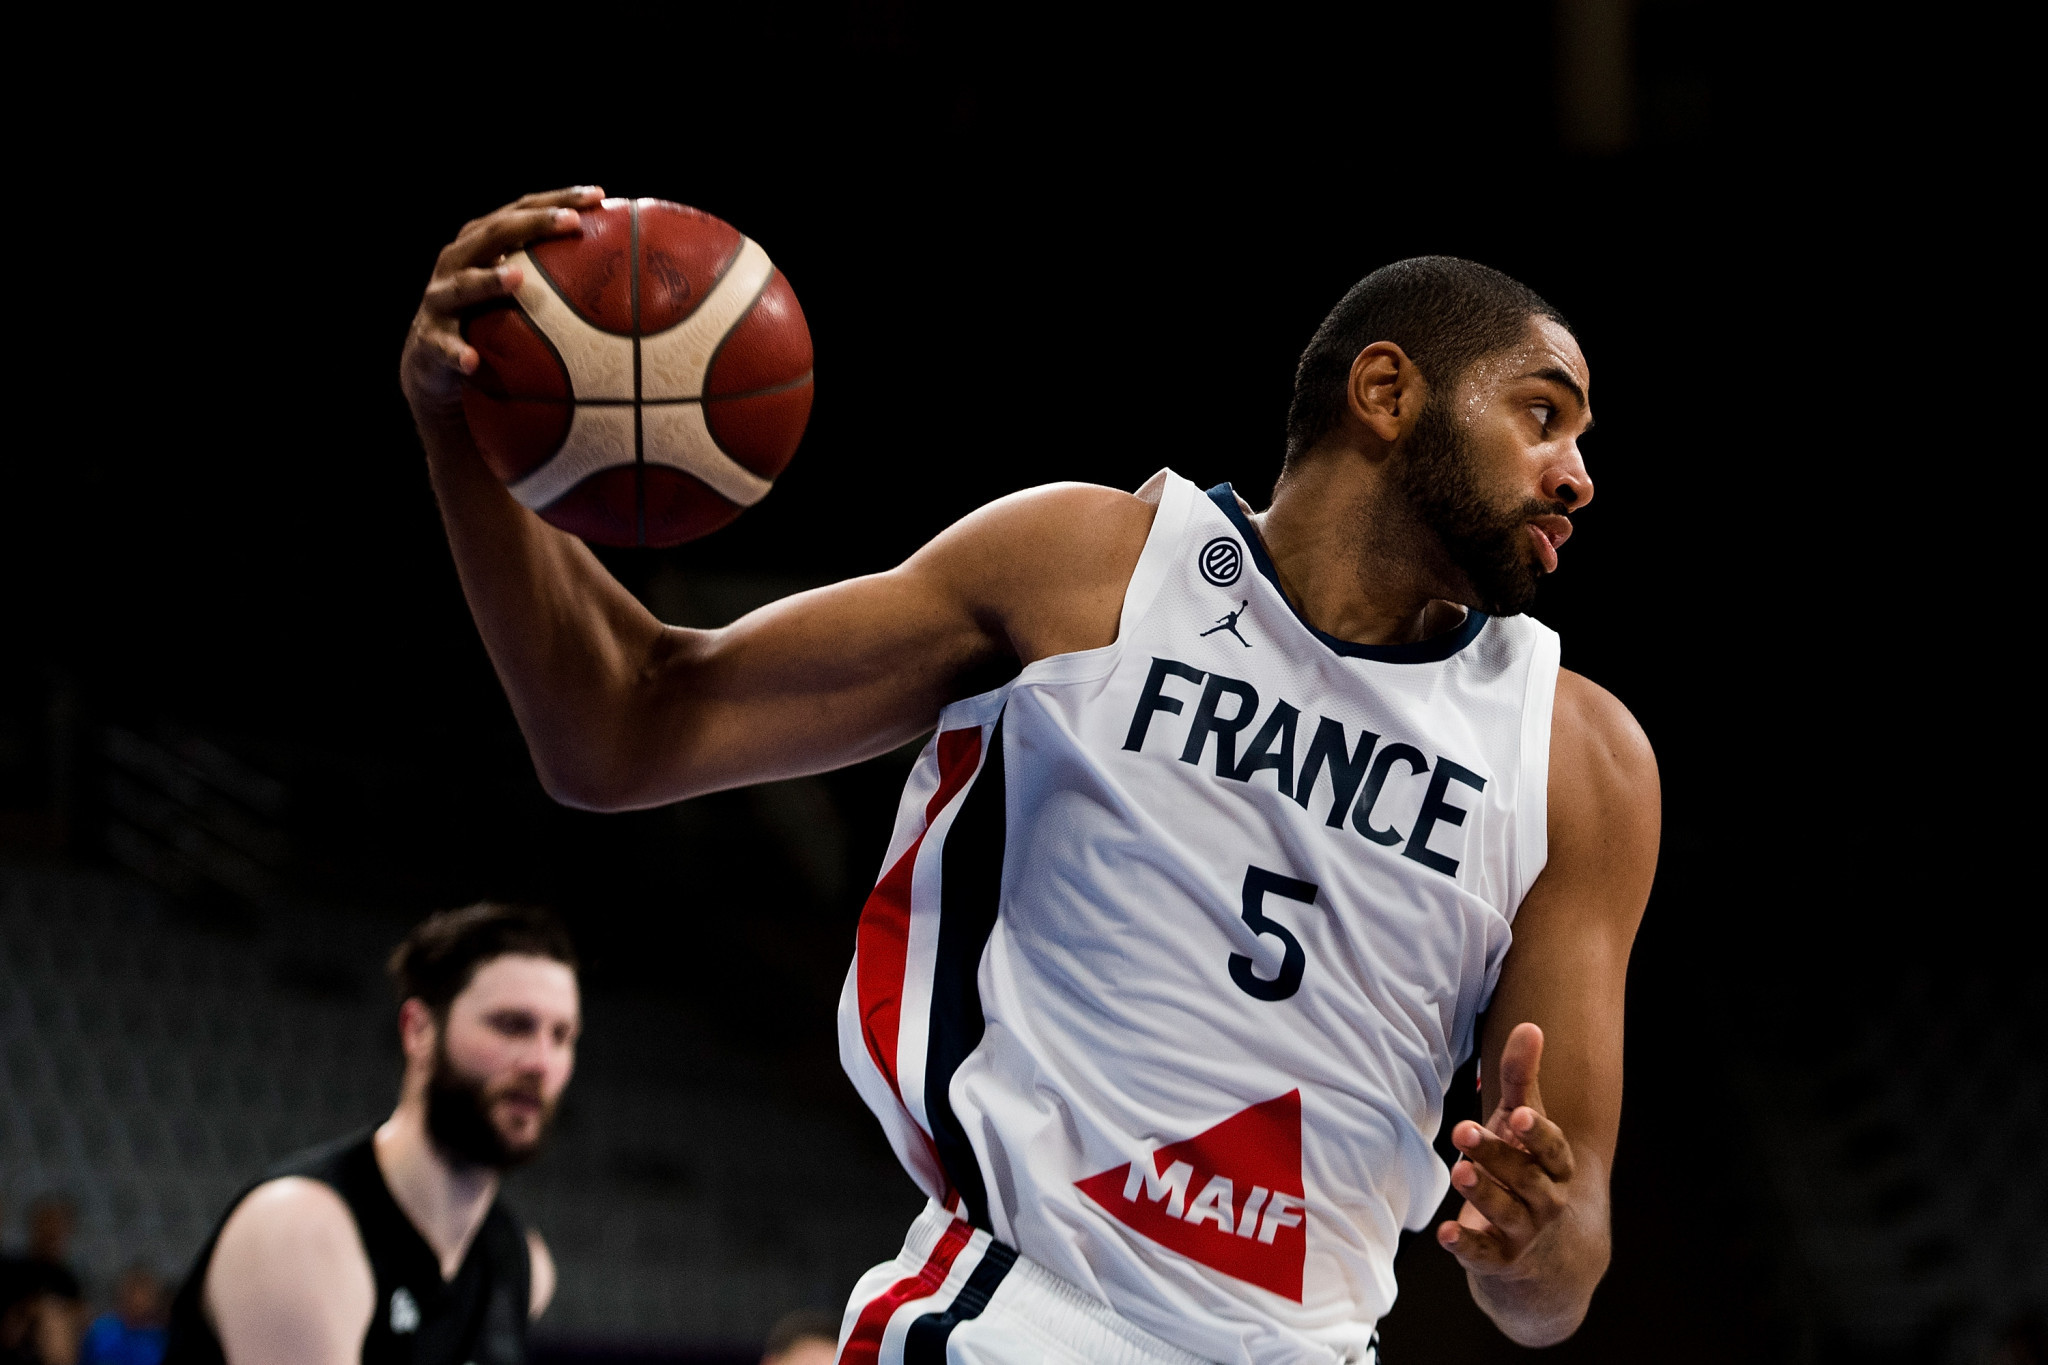 France names five NBA players in 12-man basketball squad for Tokyo 2020 Olympics